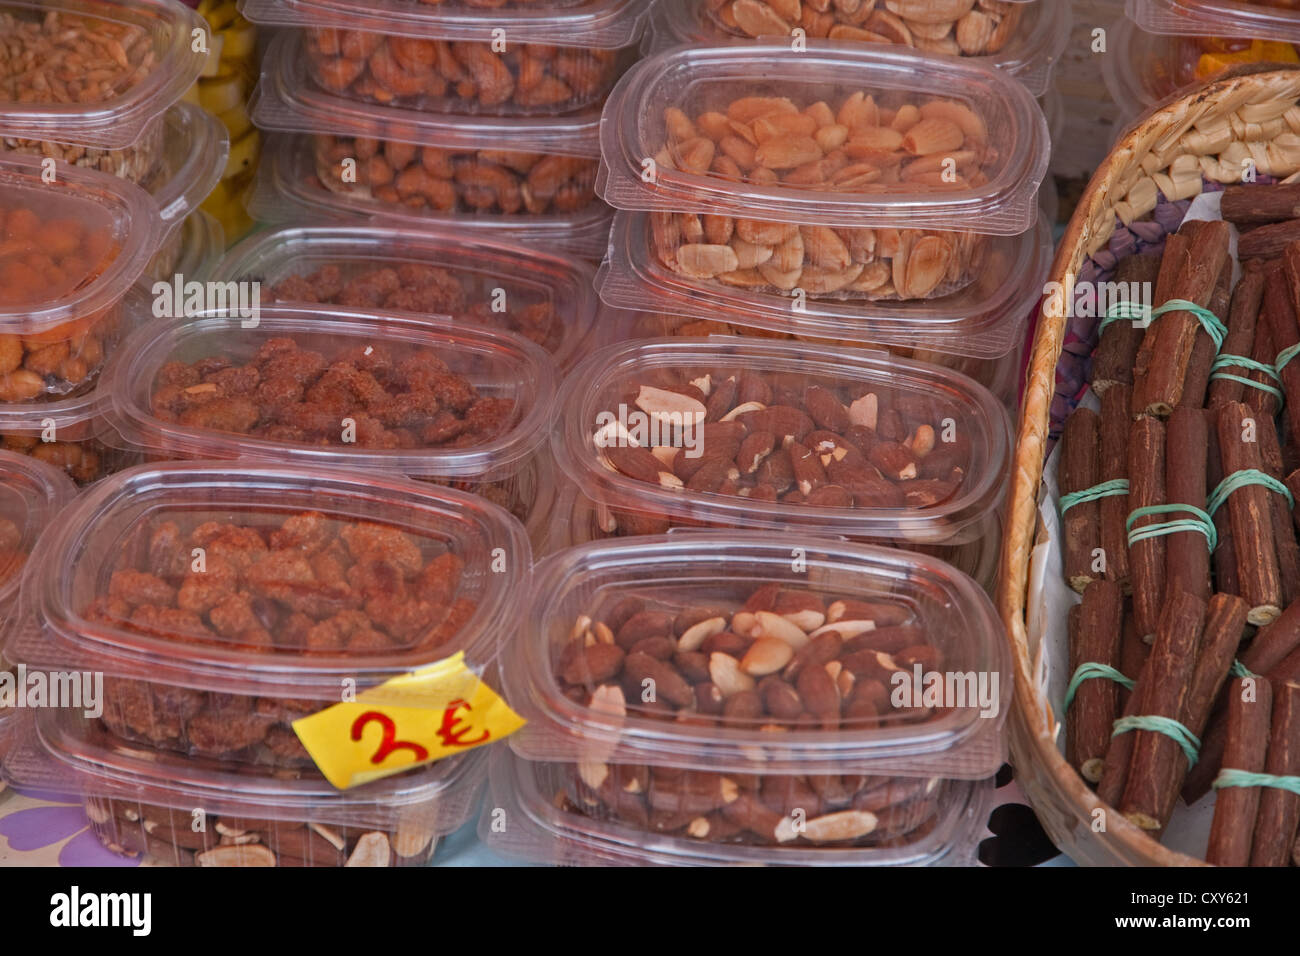 Cartons of nuts and licorice sticks for sale at roadside stall, Spain - Stock Image